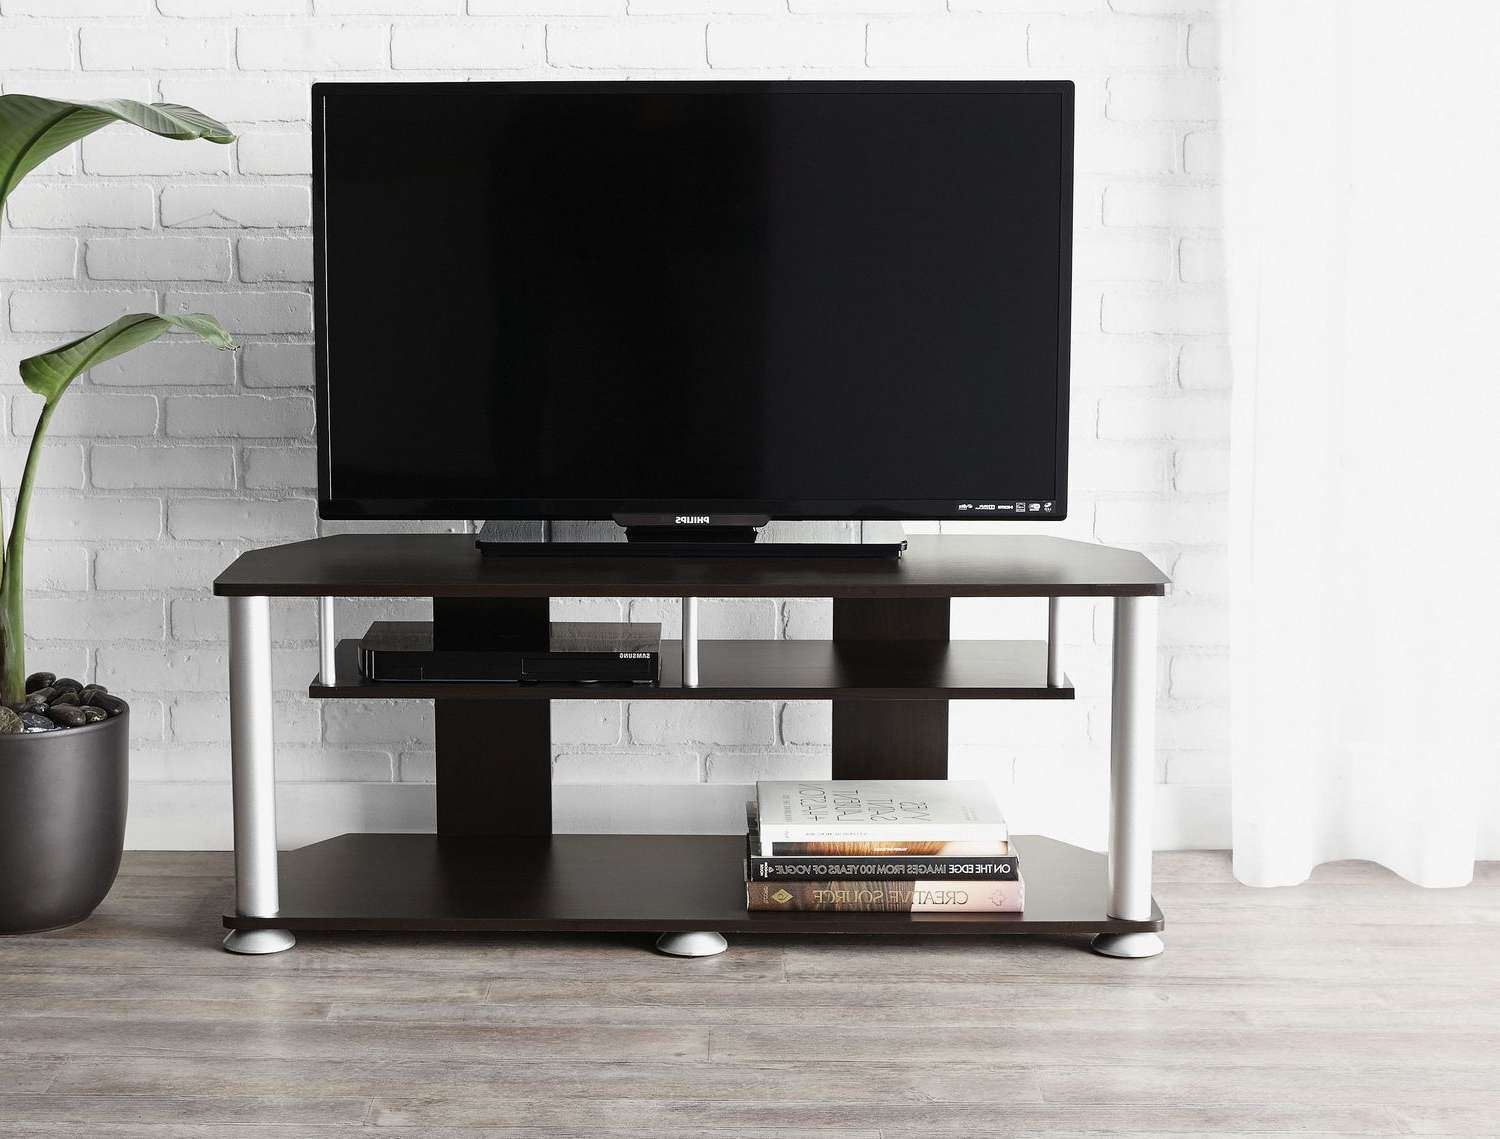 Mainstays Tv Stand | Walmart Canada Regarding Contemporary Tv Cabinets For Flat Screens (View 16 of 20)